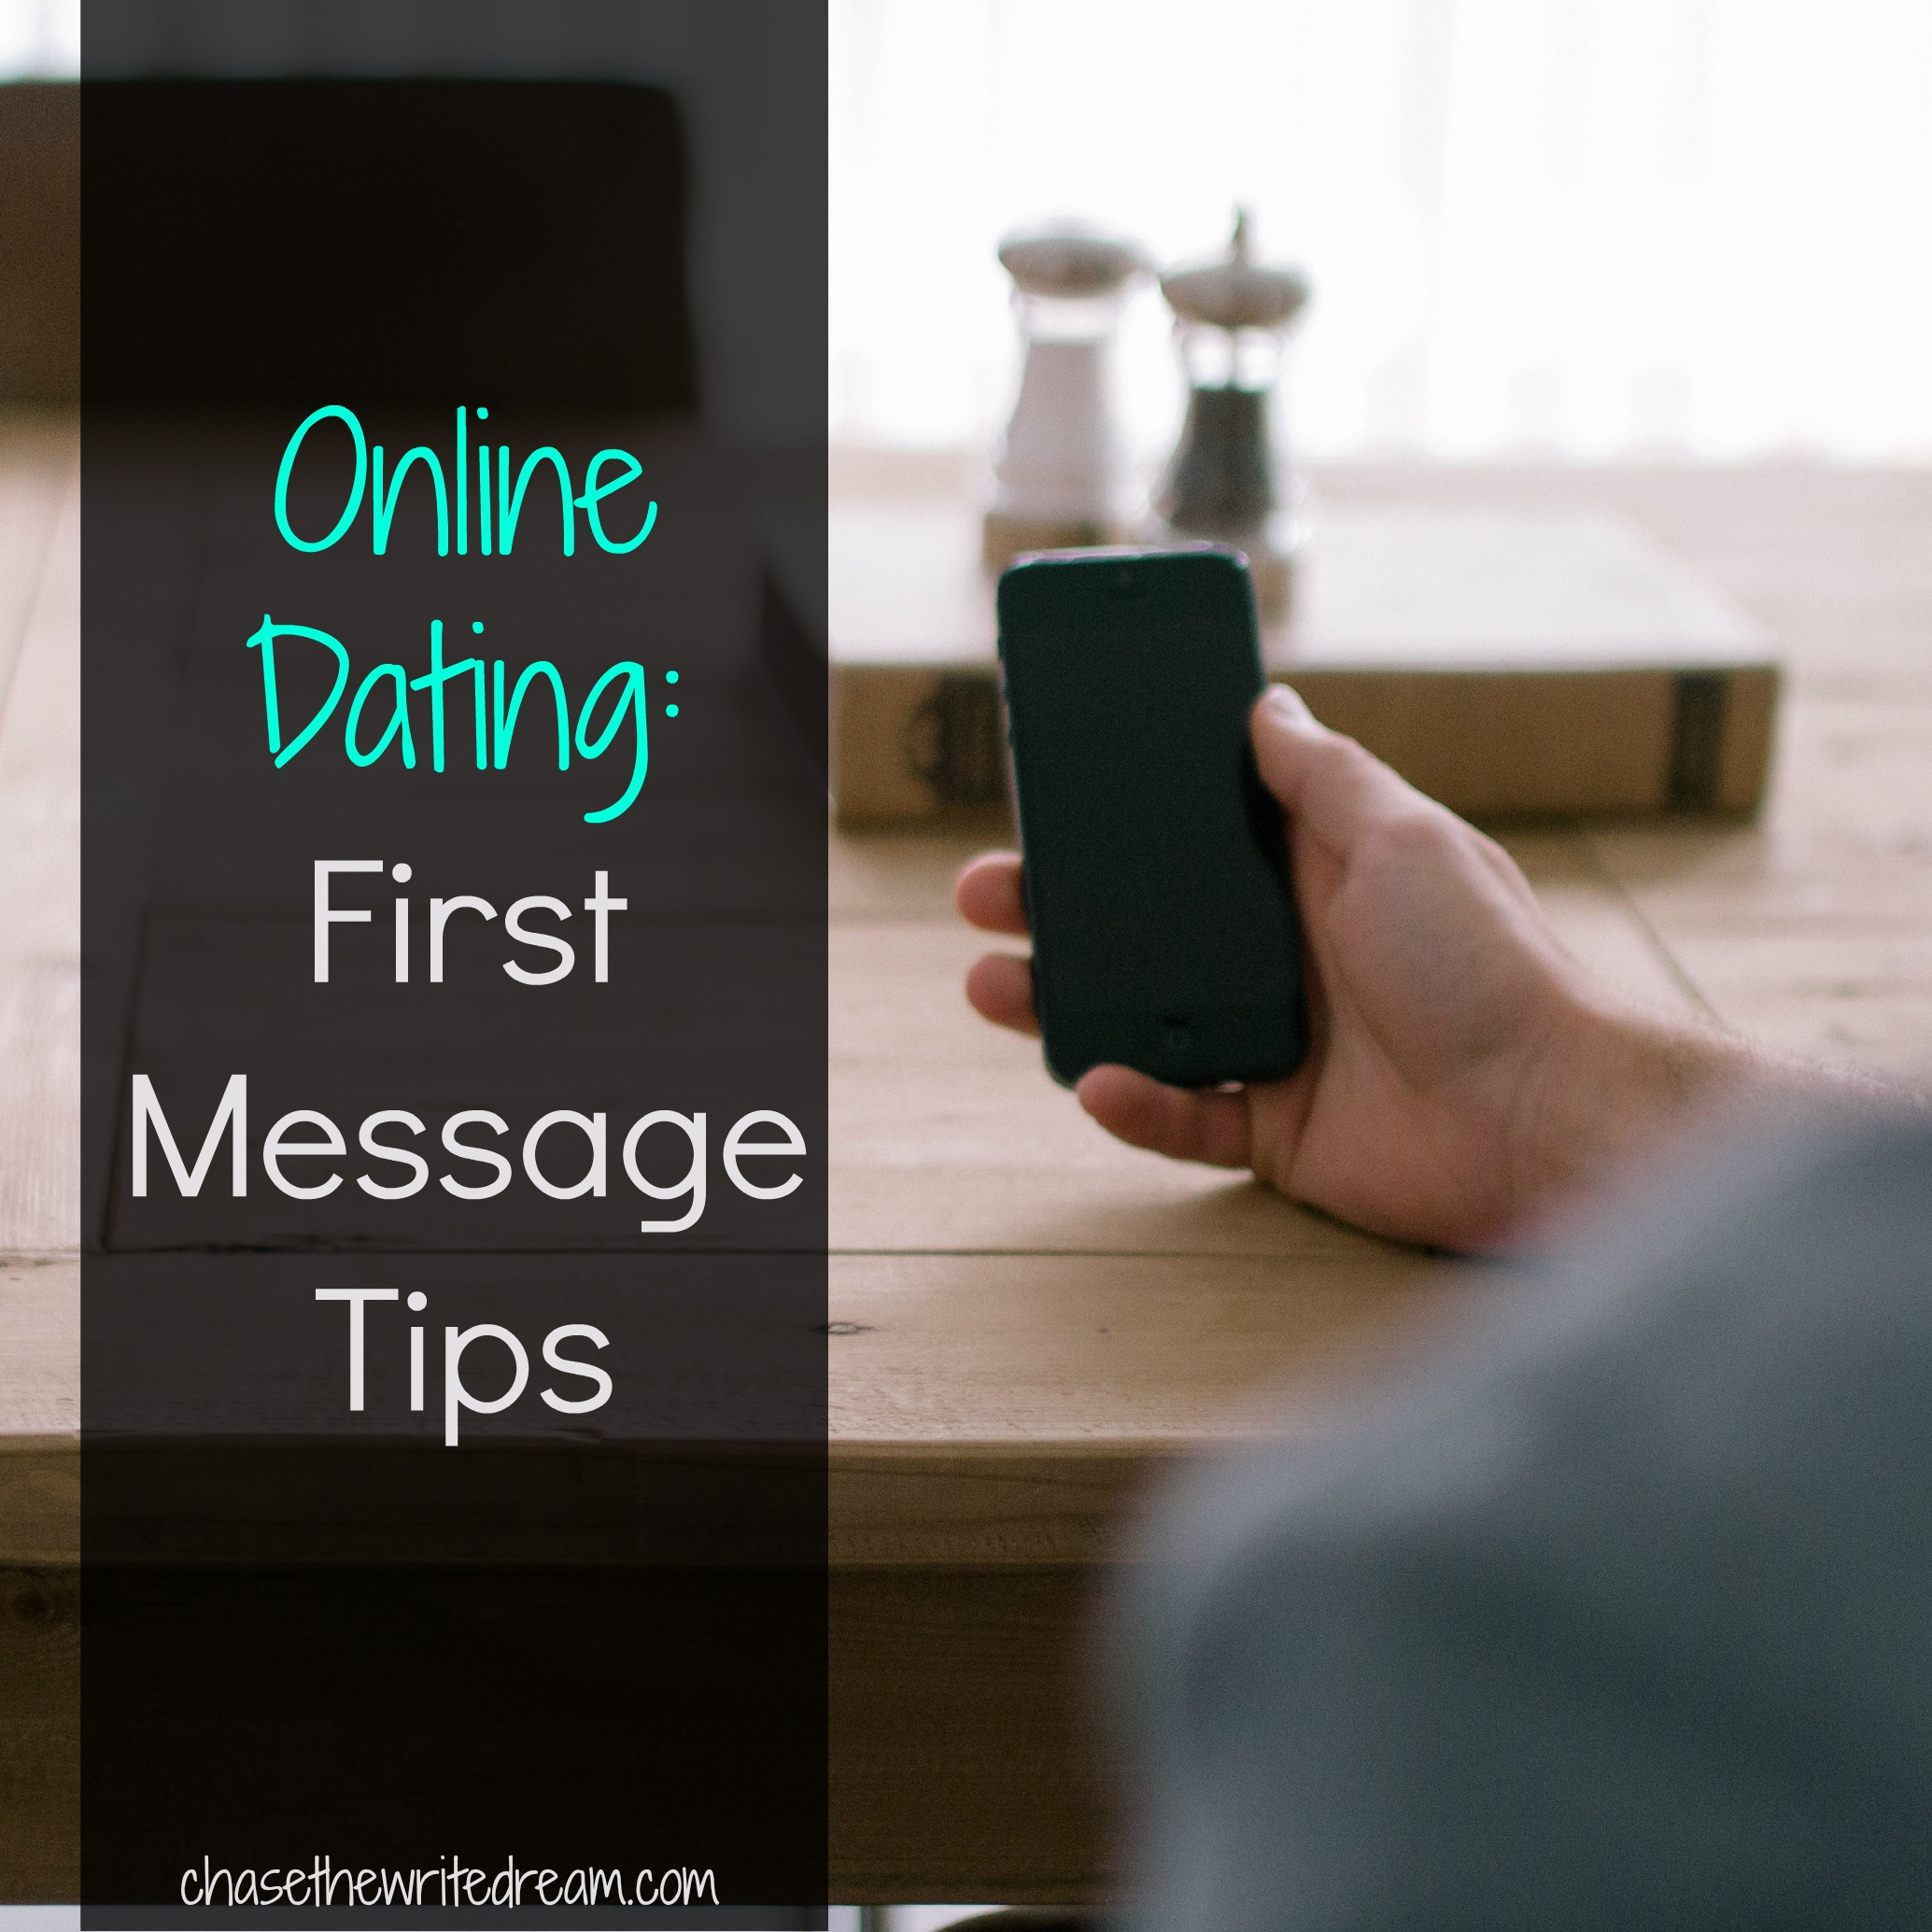 Online dating how to first message